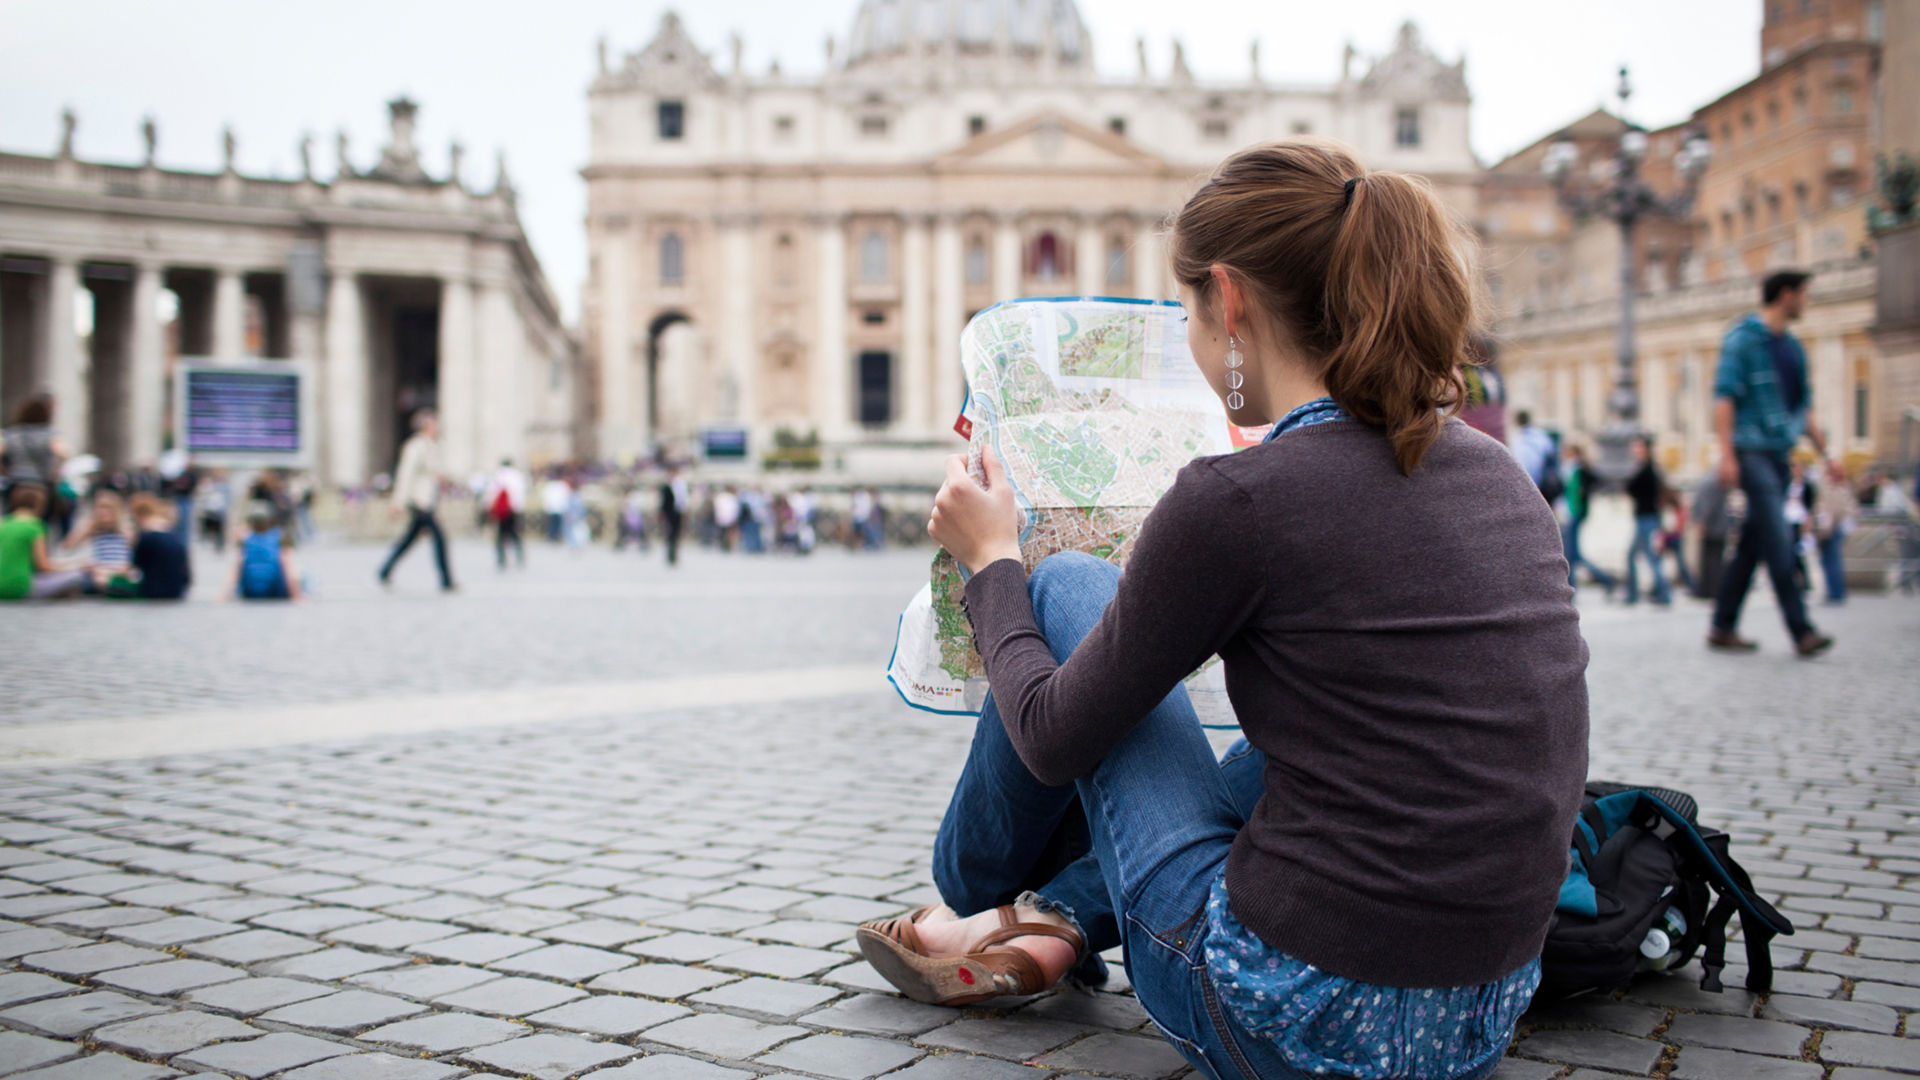 Young woman studying map | Sheknows.com